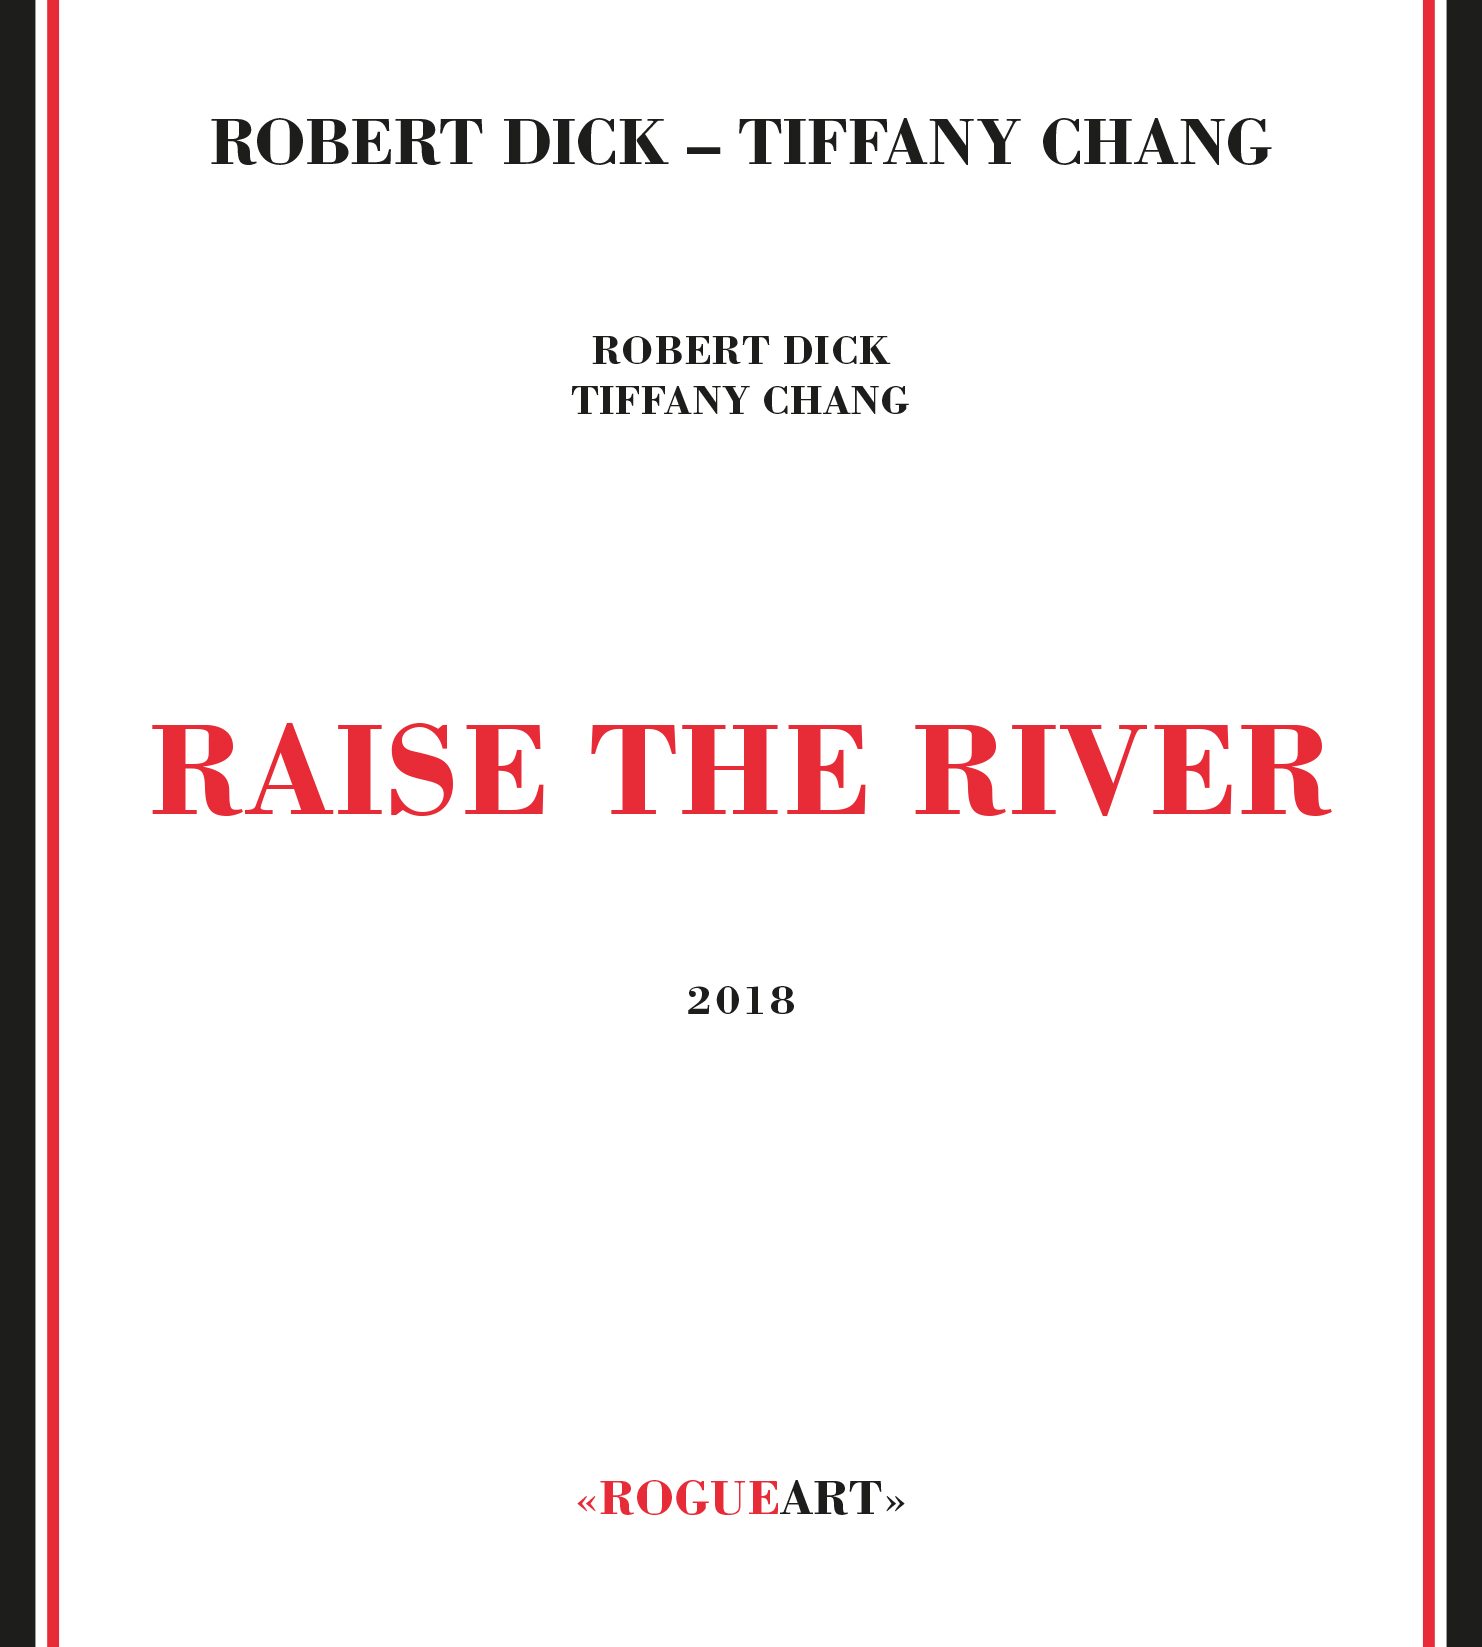 Front cover of the album RAISE THE RIVER